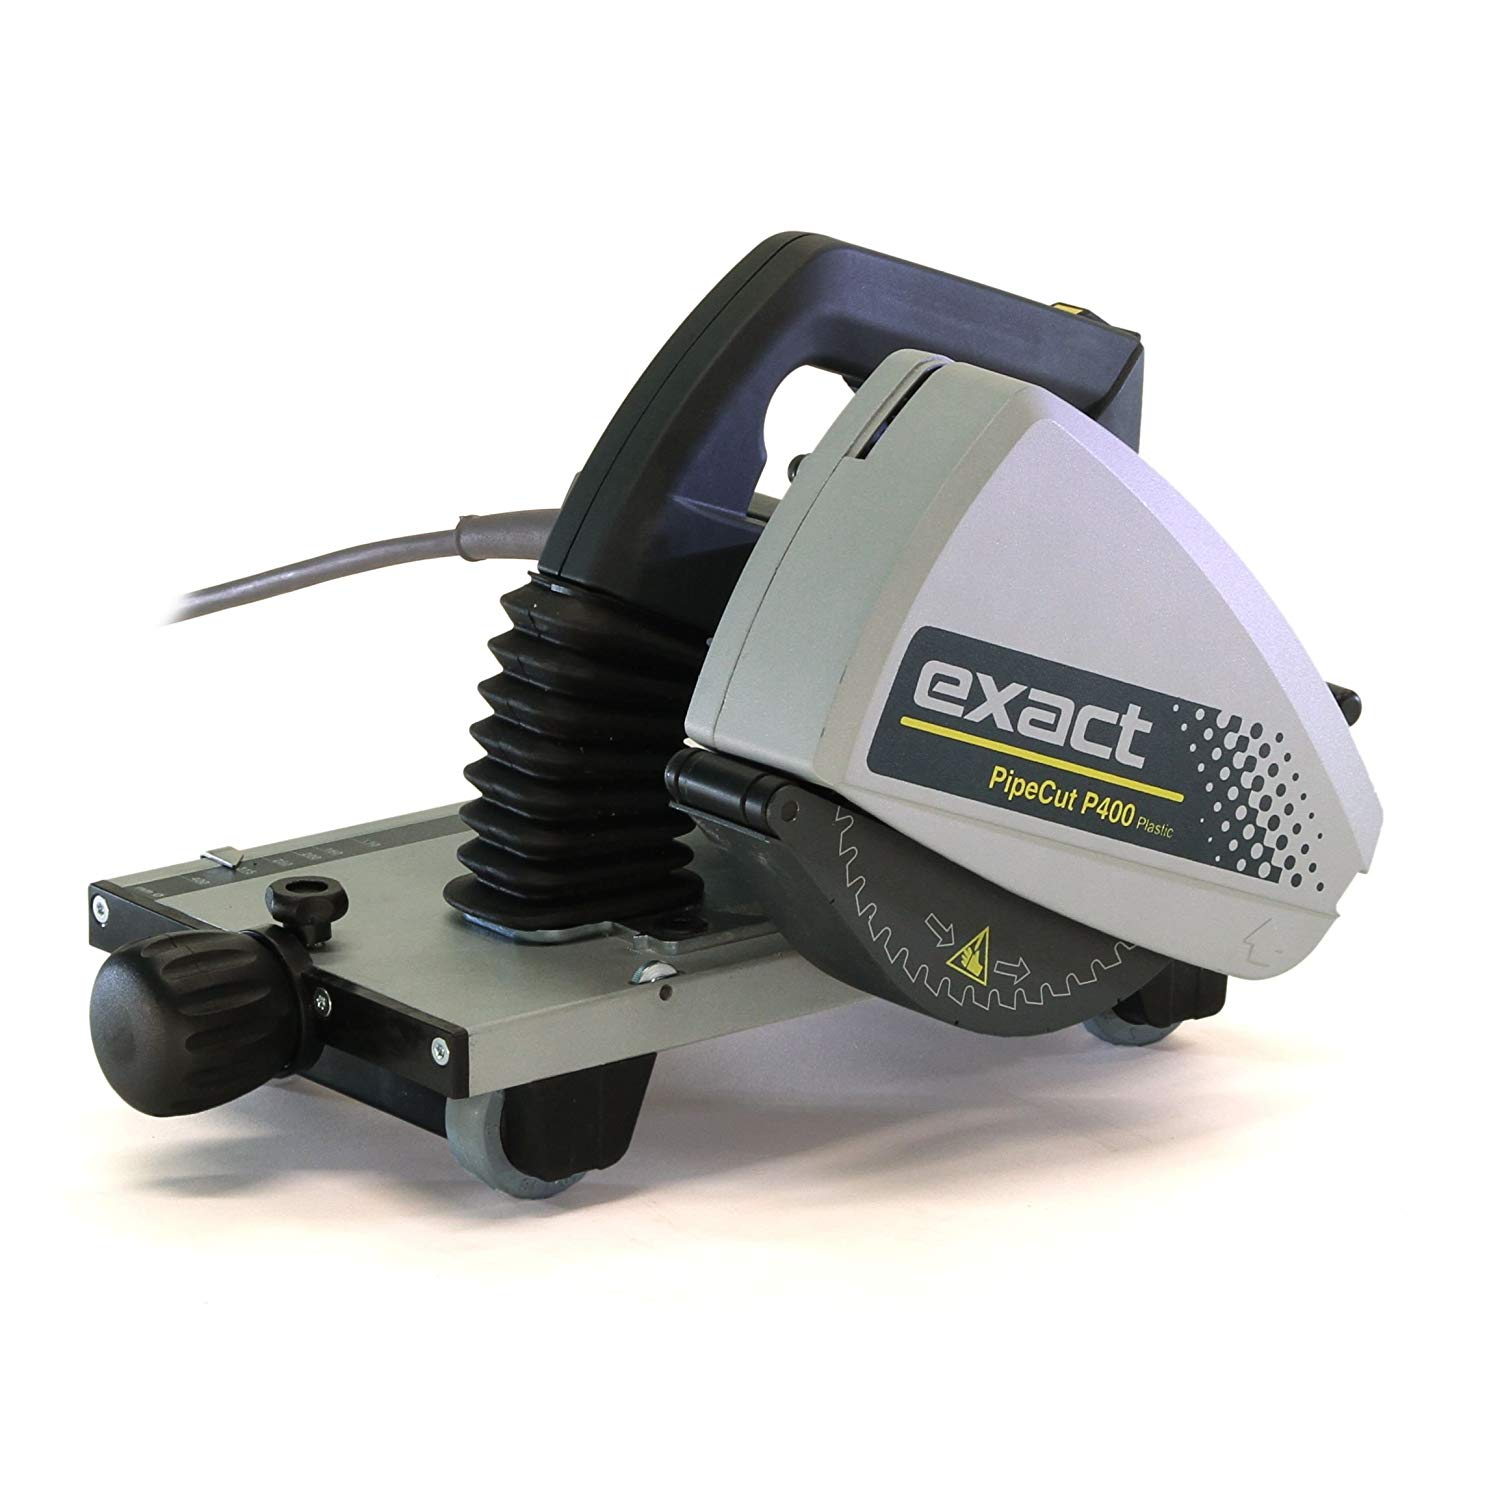 Exact Tool 7010401US P400 US Pipe Cutting System with Cut & Bevel Blade for Cutting Plastic Pipe